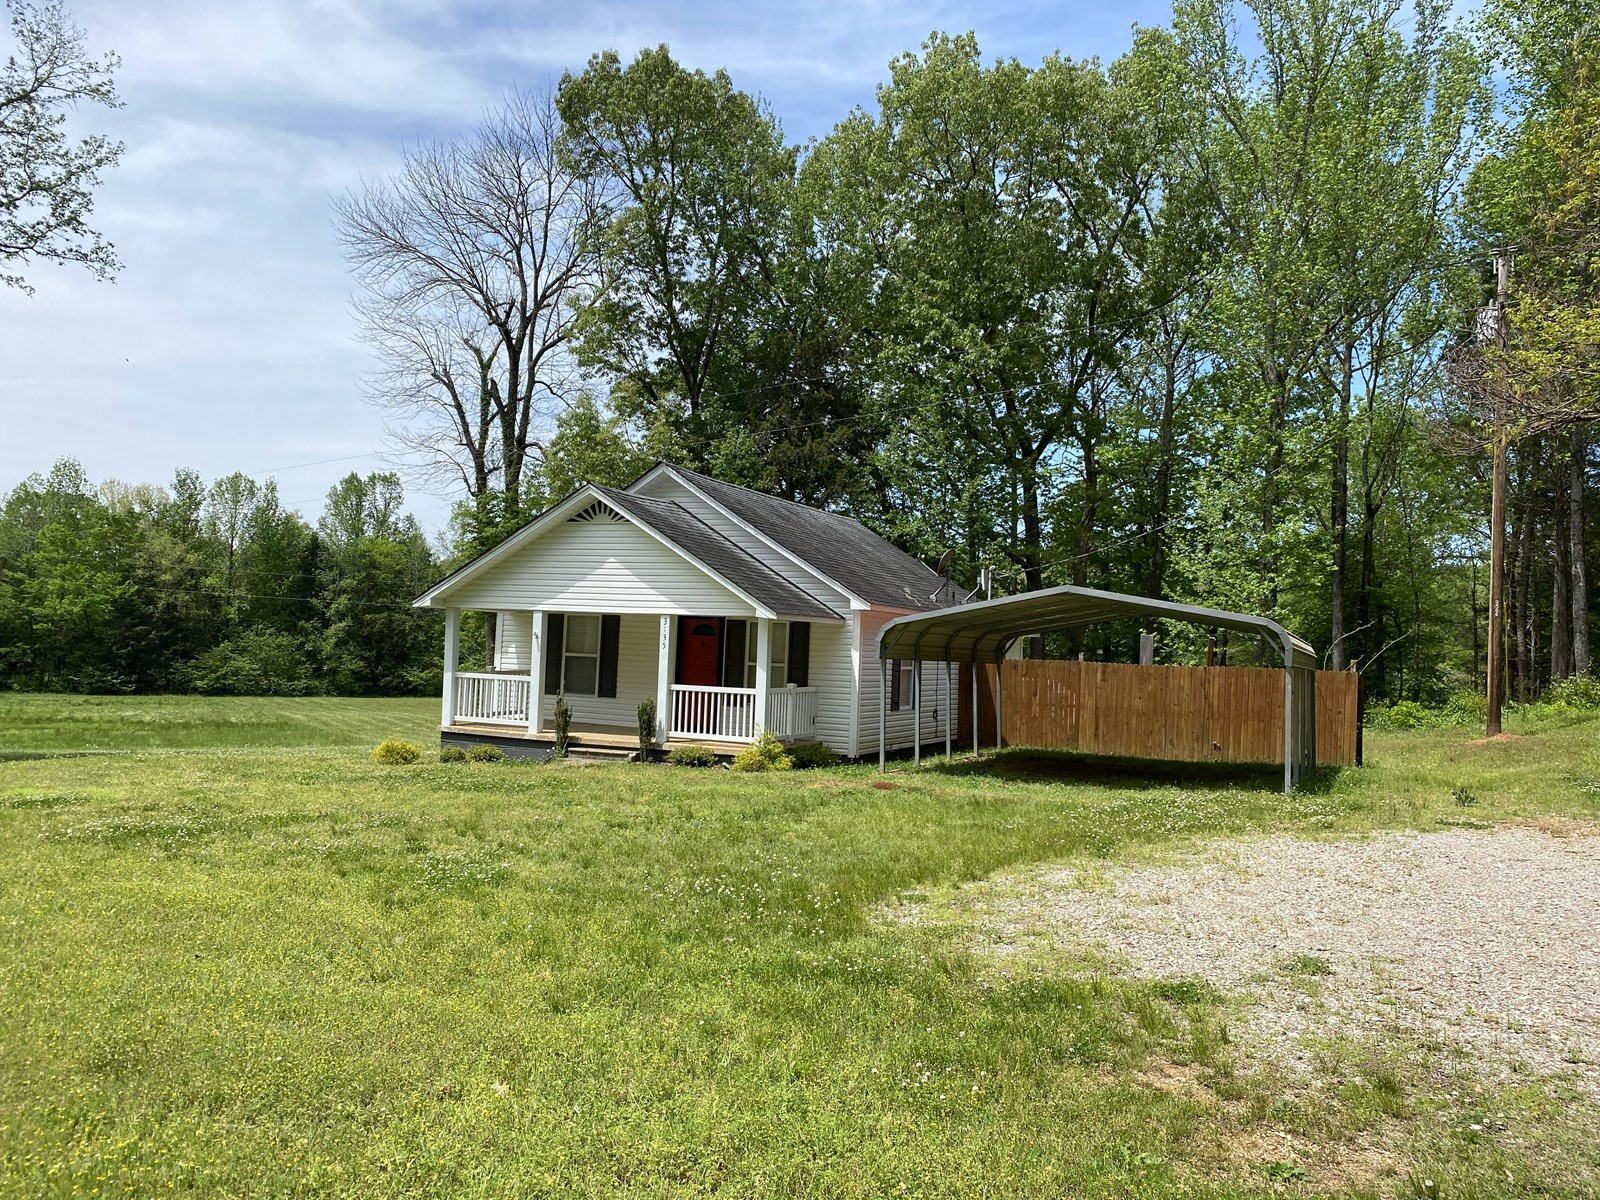 2 BEDROOM COUNTRY HOME IN SAVANNAH, TN FOR SALE, SHED